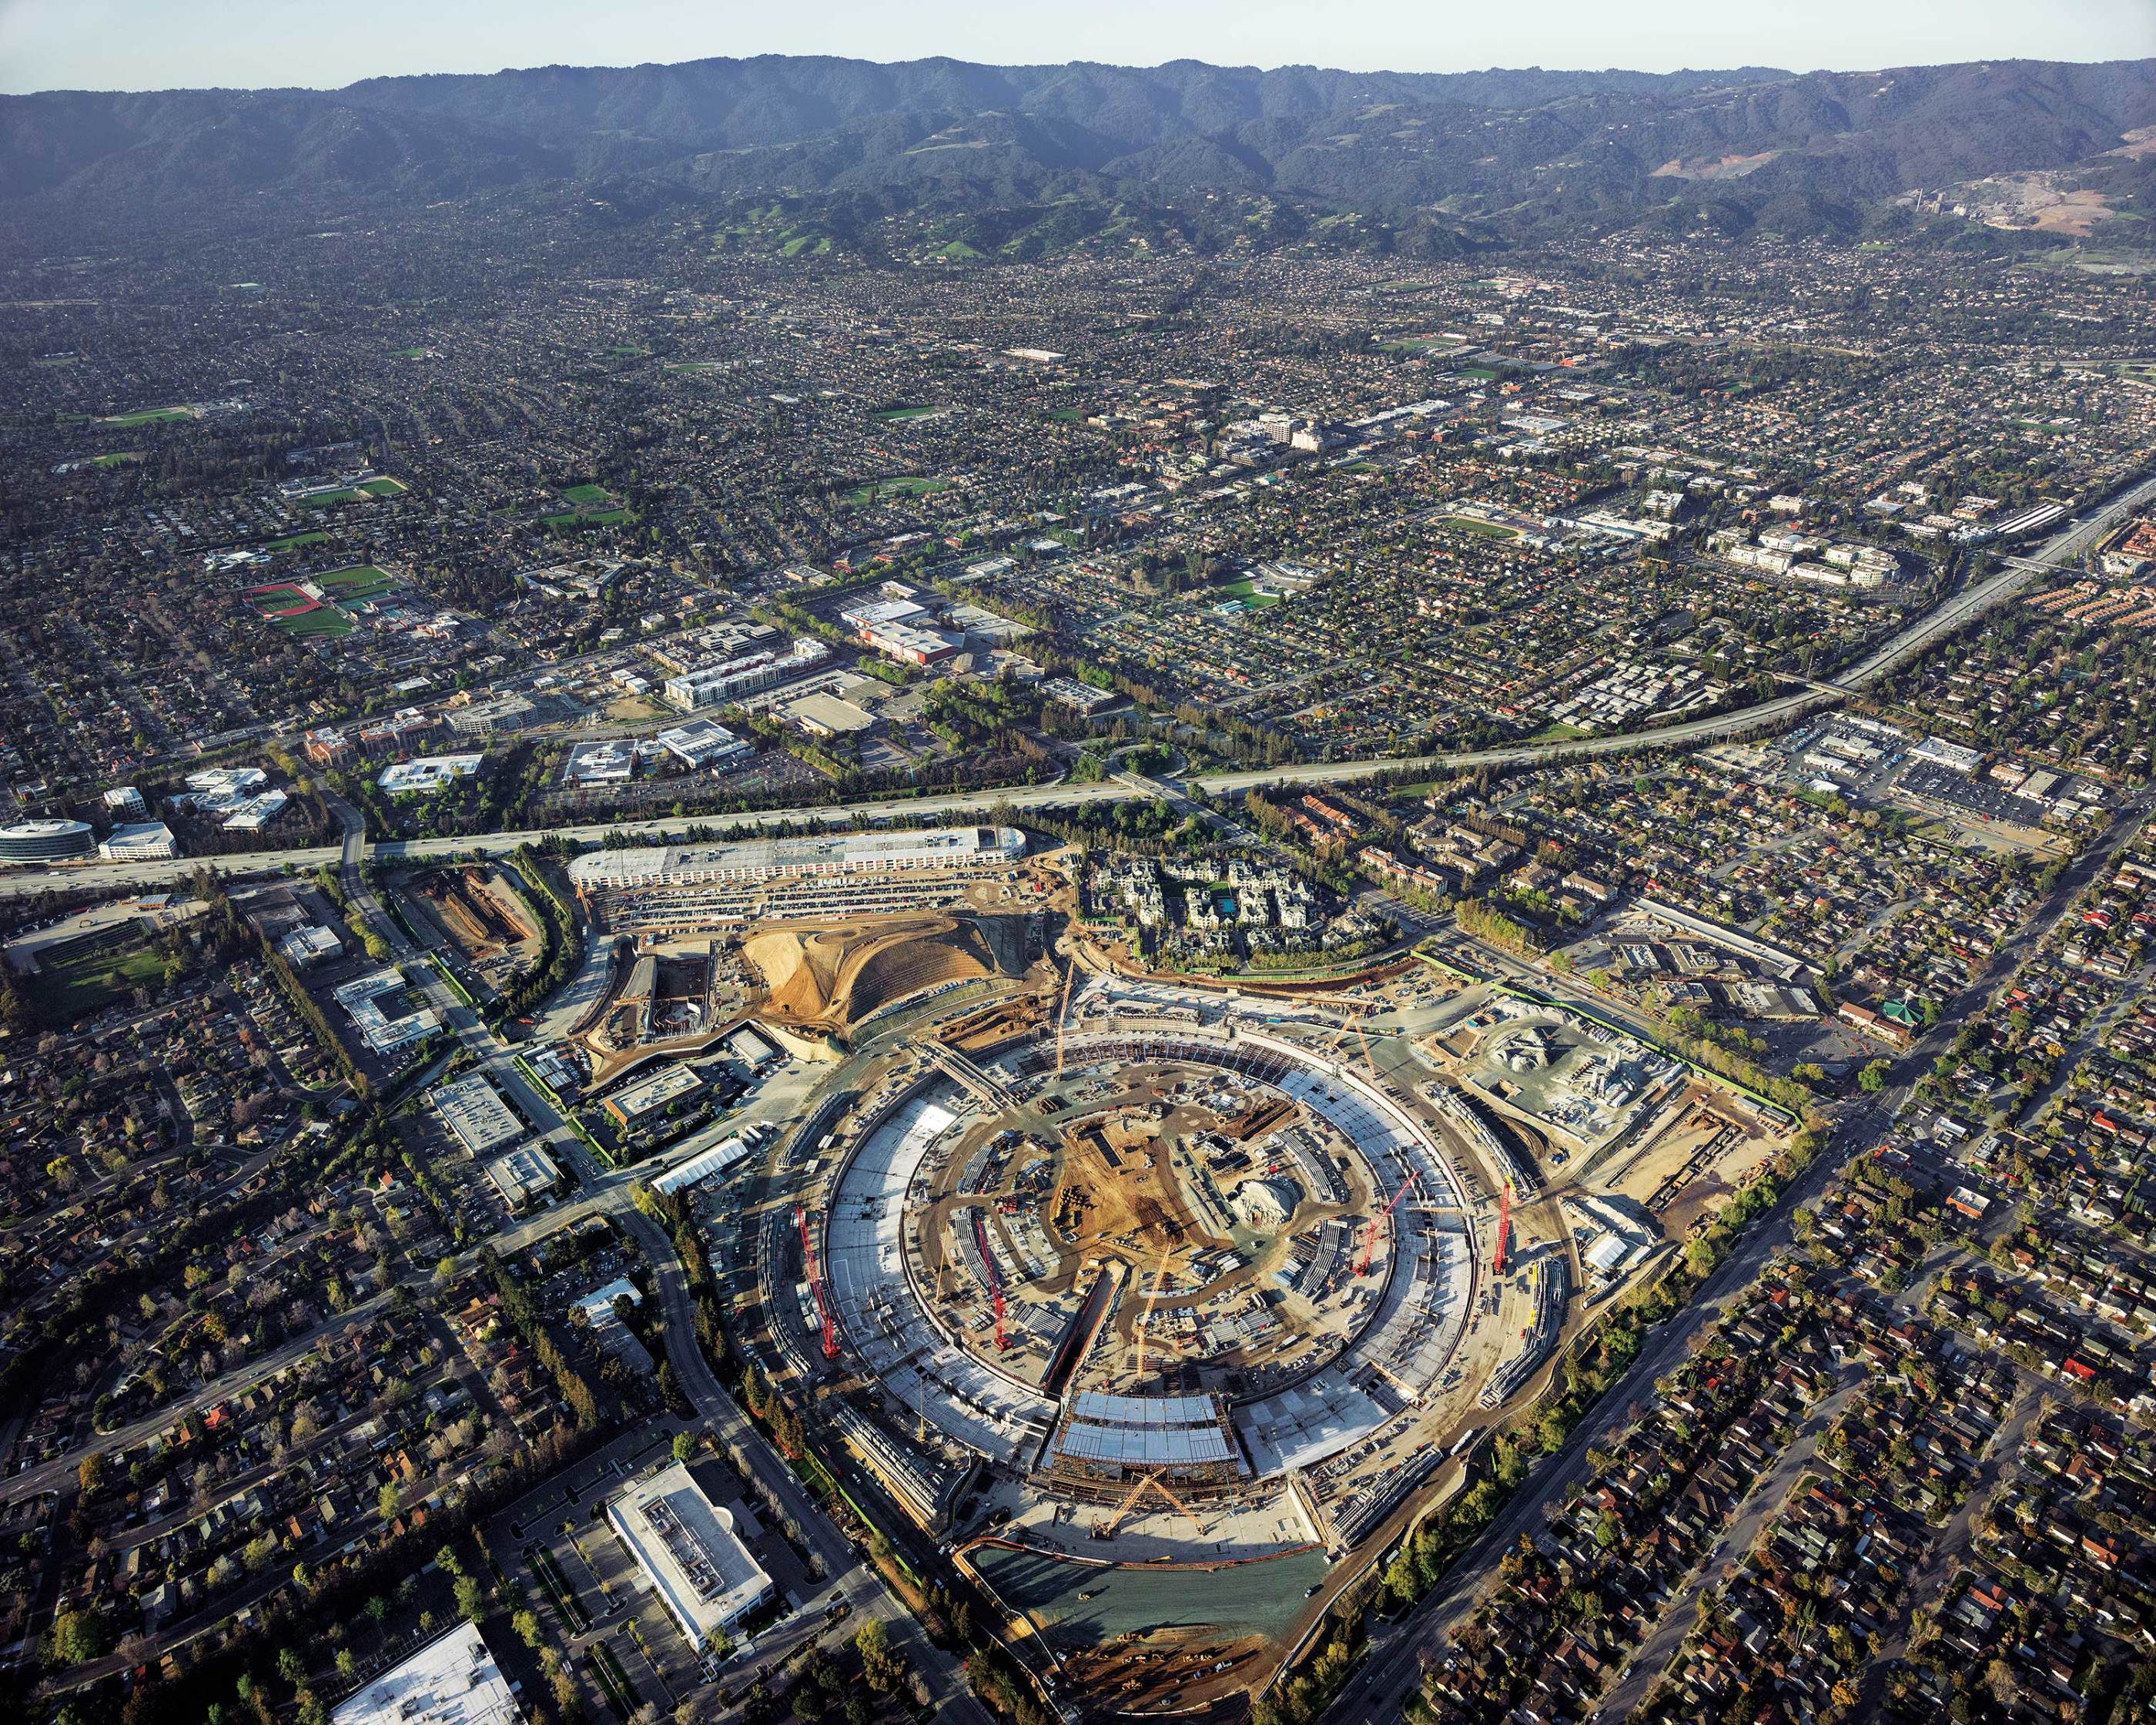 Proposal for Apple Park, future headquarters of Apple Inc. in Curtino, California, presented in 2011, expected to be completed by the end of 2017